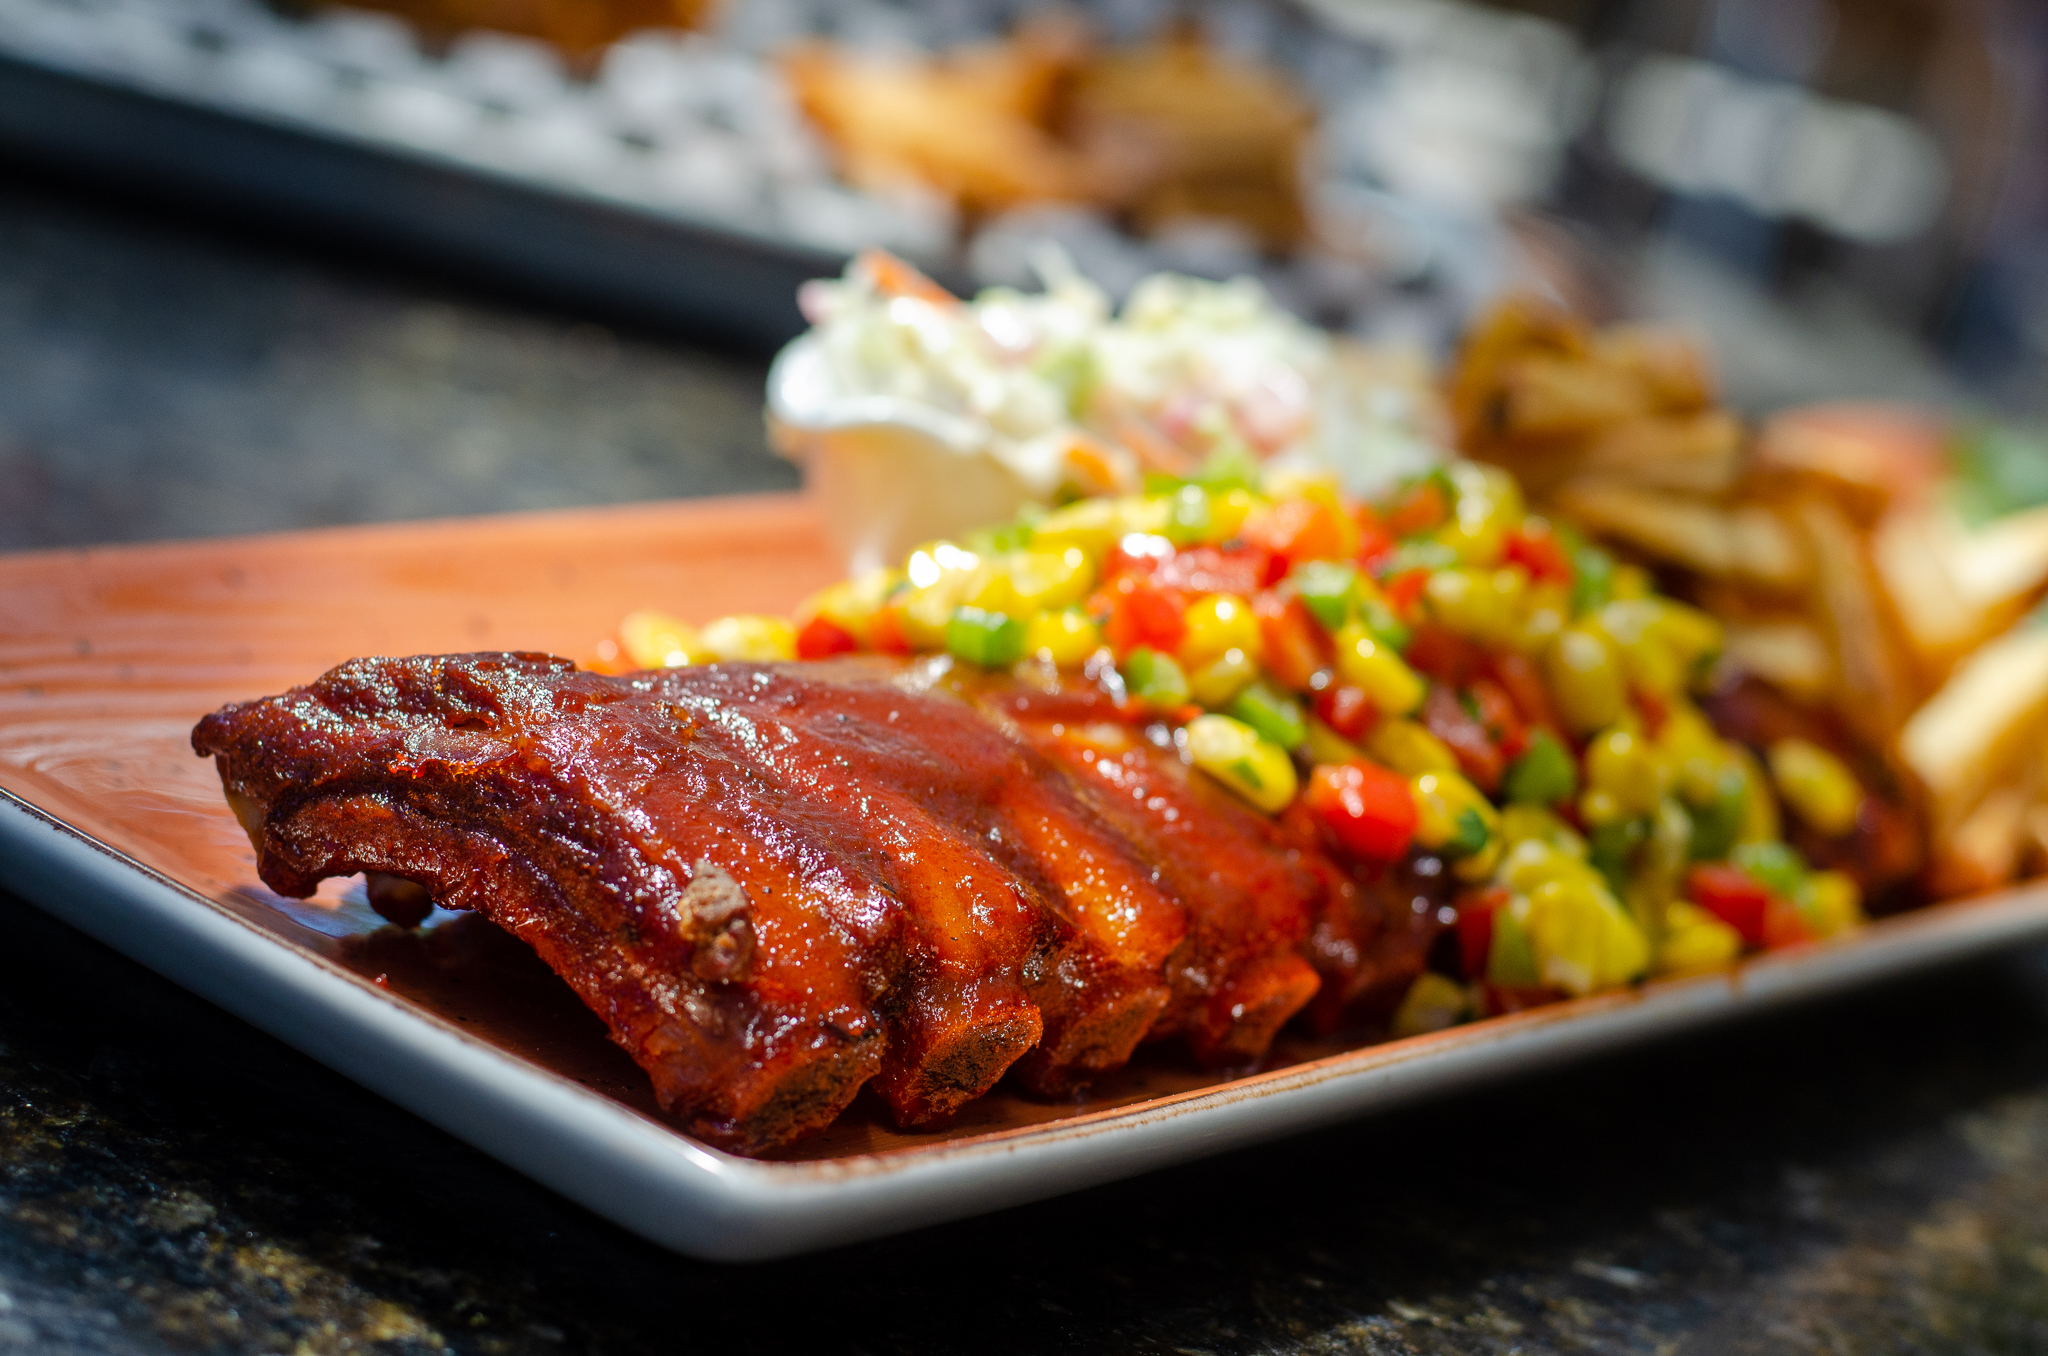 BBQ Pork Ribs from Parks & Rec in Windsor, Ontario.